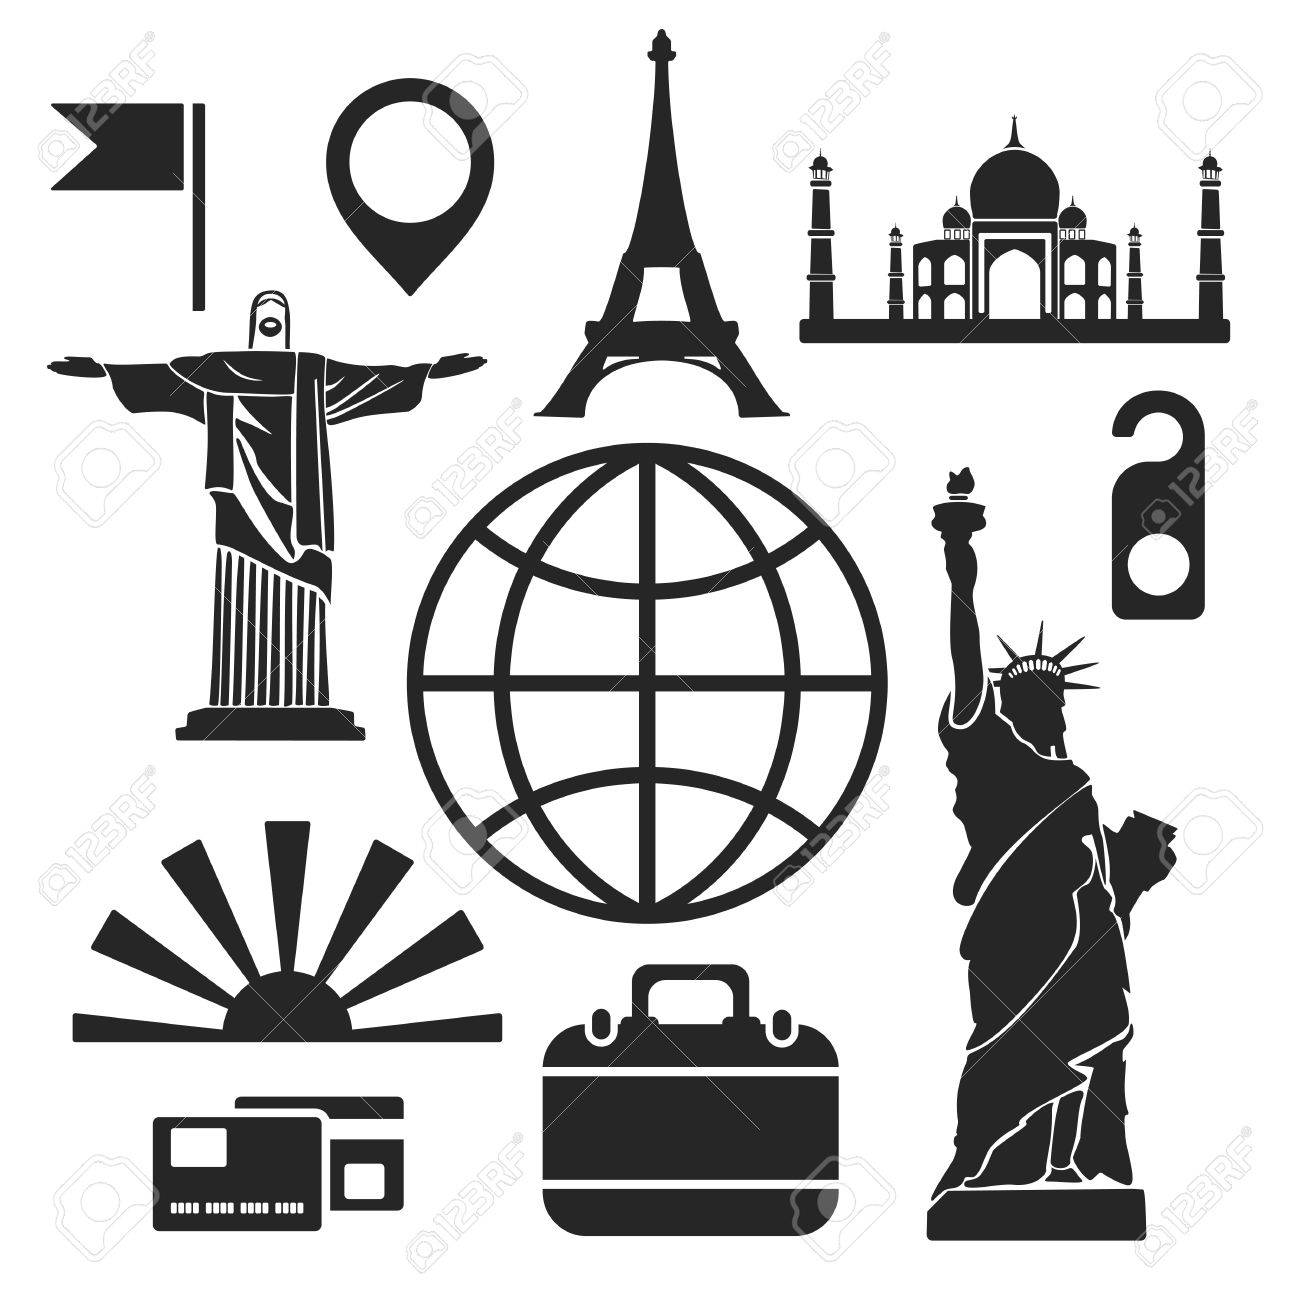 Travel Web And Mobile Icons Isolated On White Vector Symbols